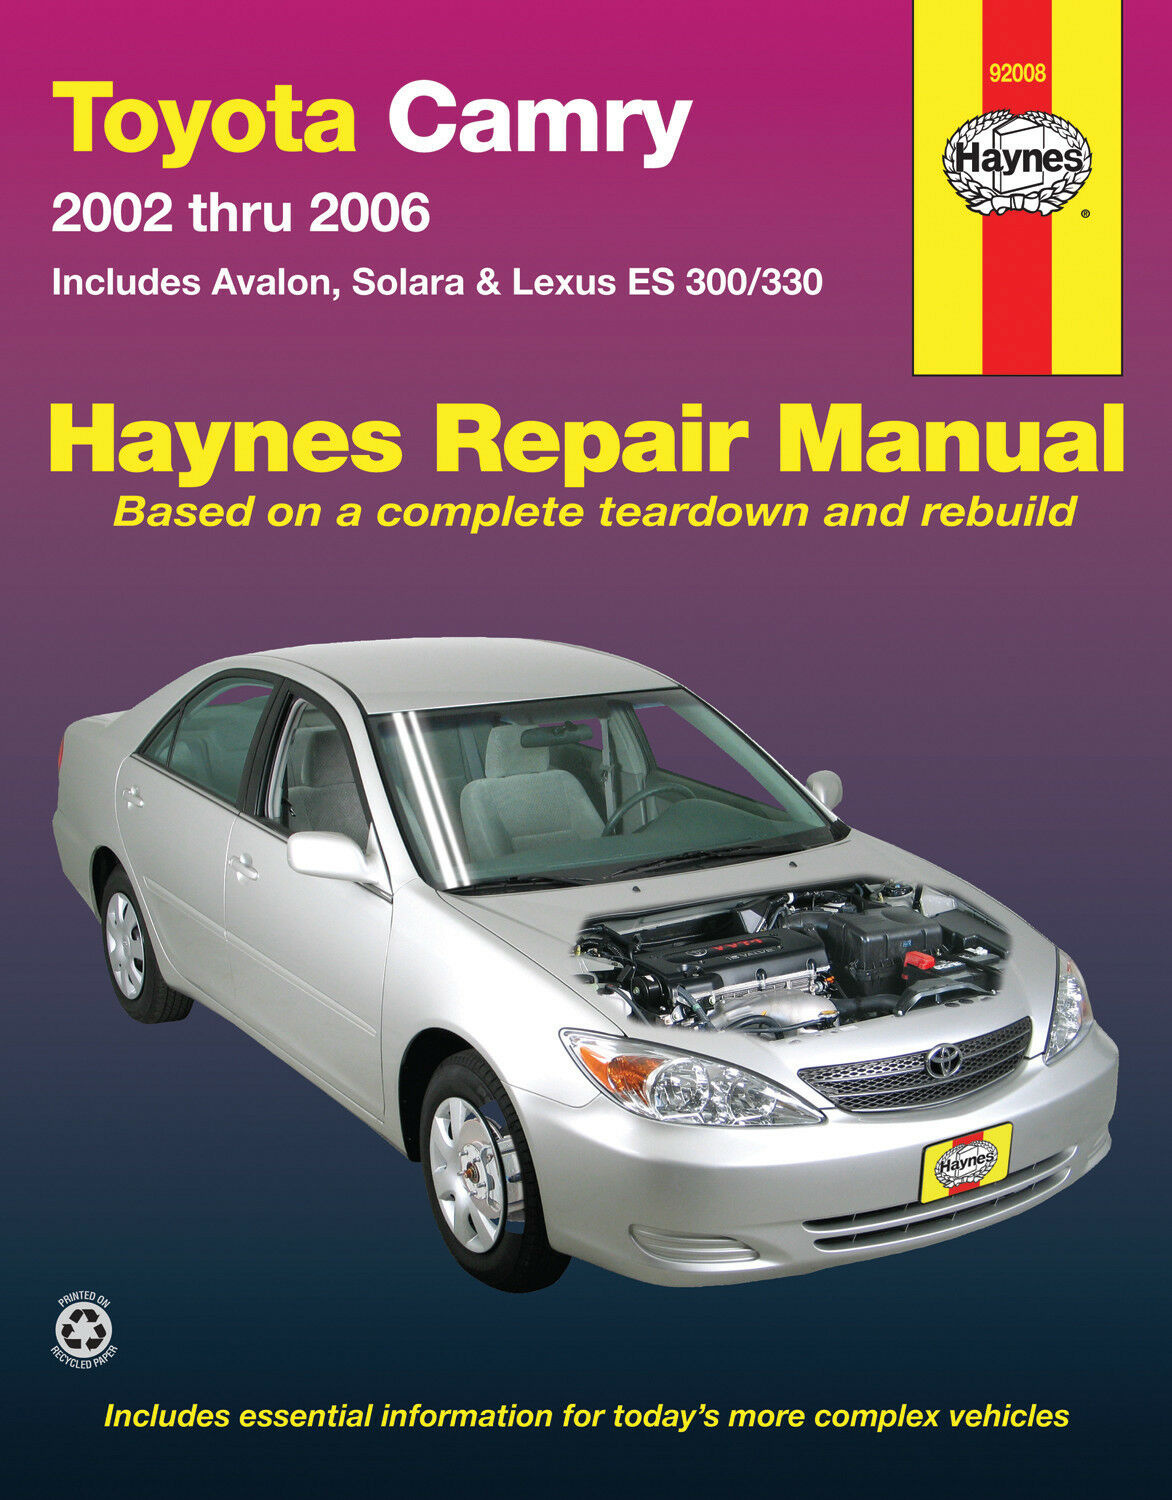 Haynes 92008 Repair Manual Toyota Camry 02 - 06 Includes Avalon & Lexus ES  02- 1 of 1FREE Shipping ...